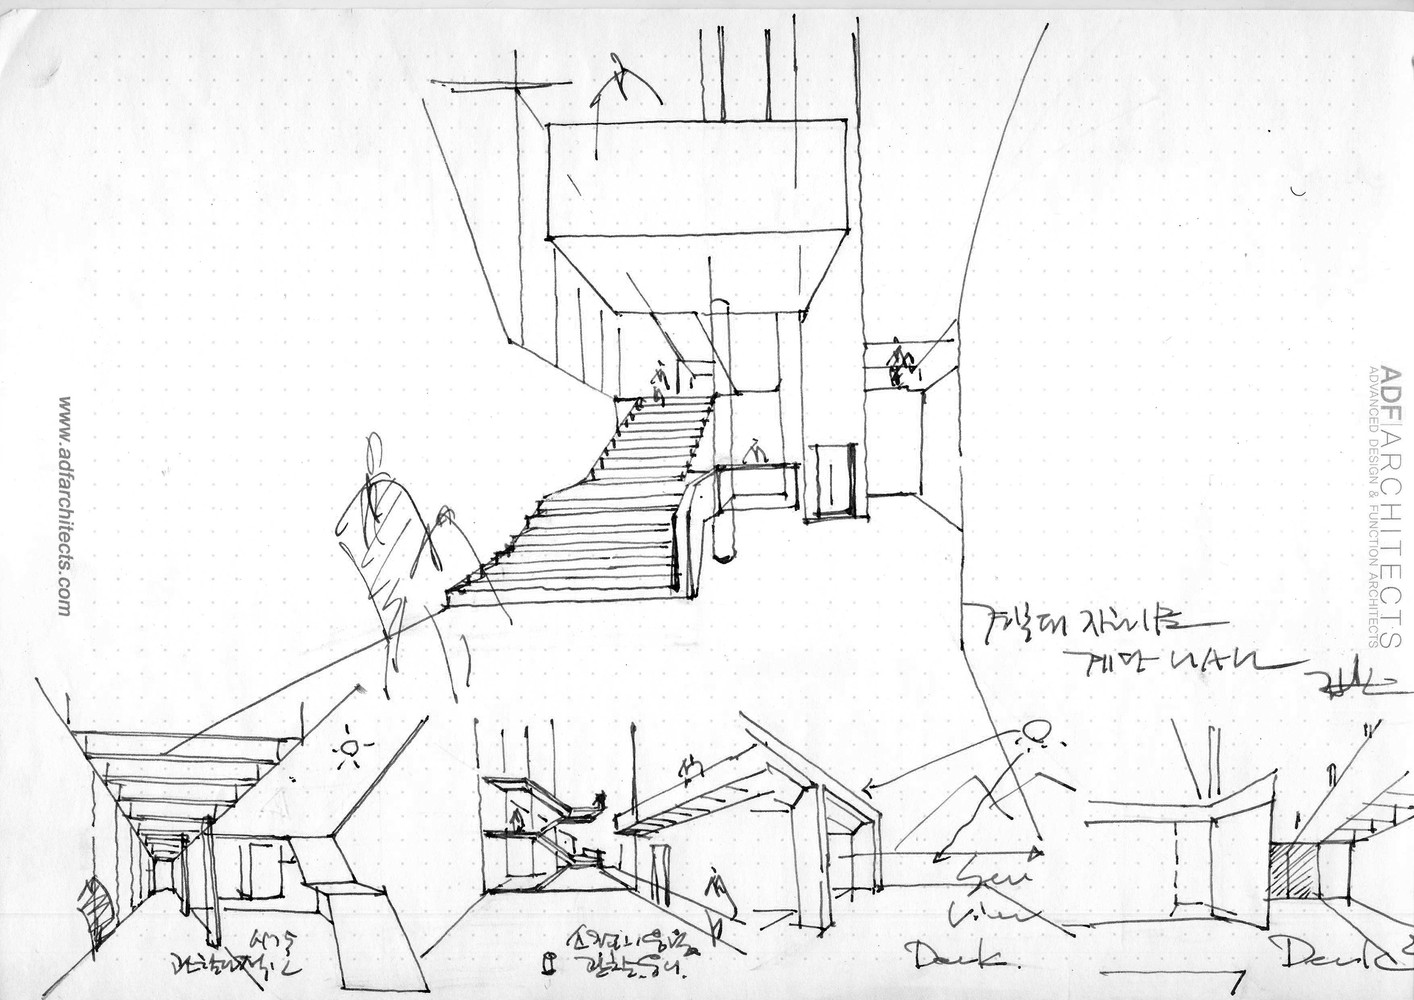 Architectural Design Studio Of KNU,Drawings 2